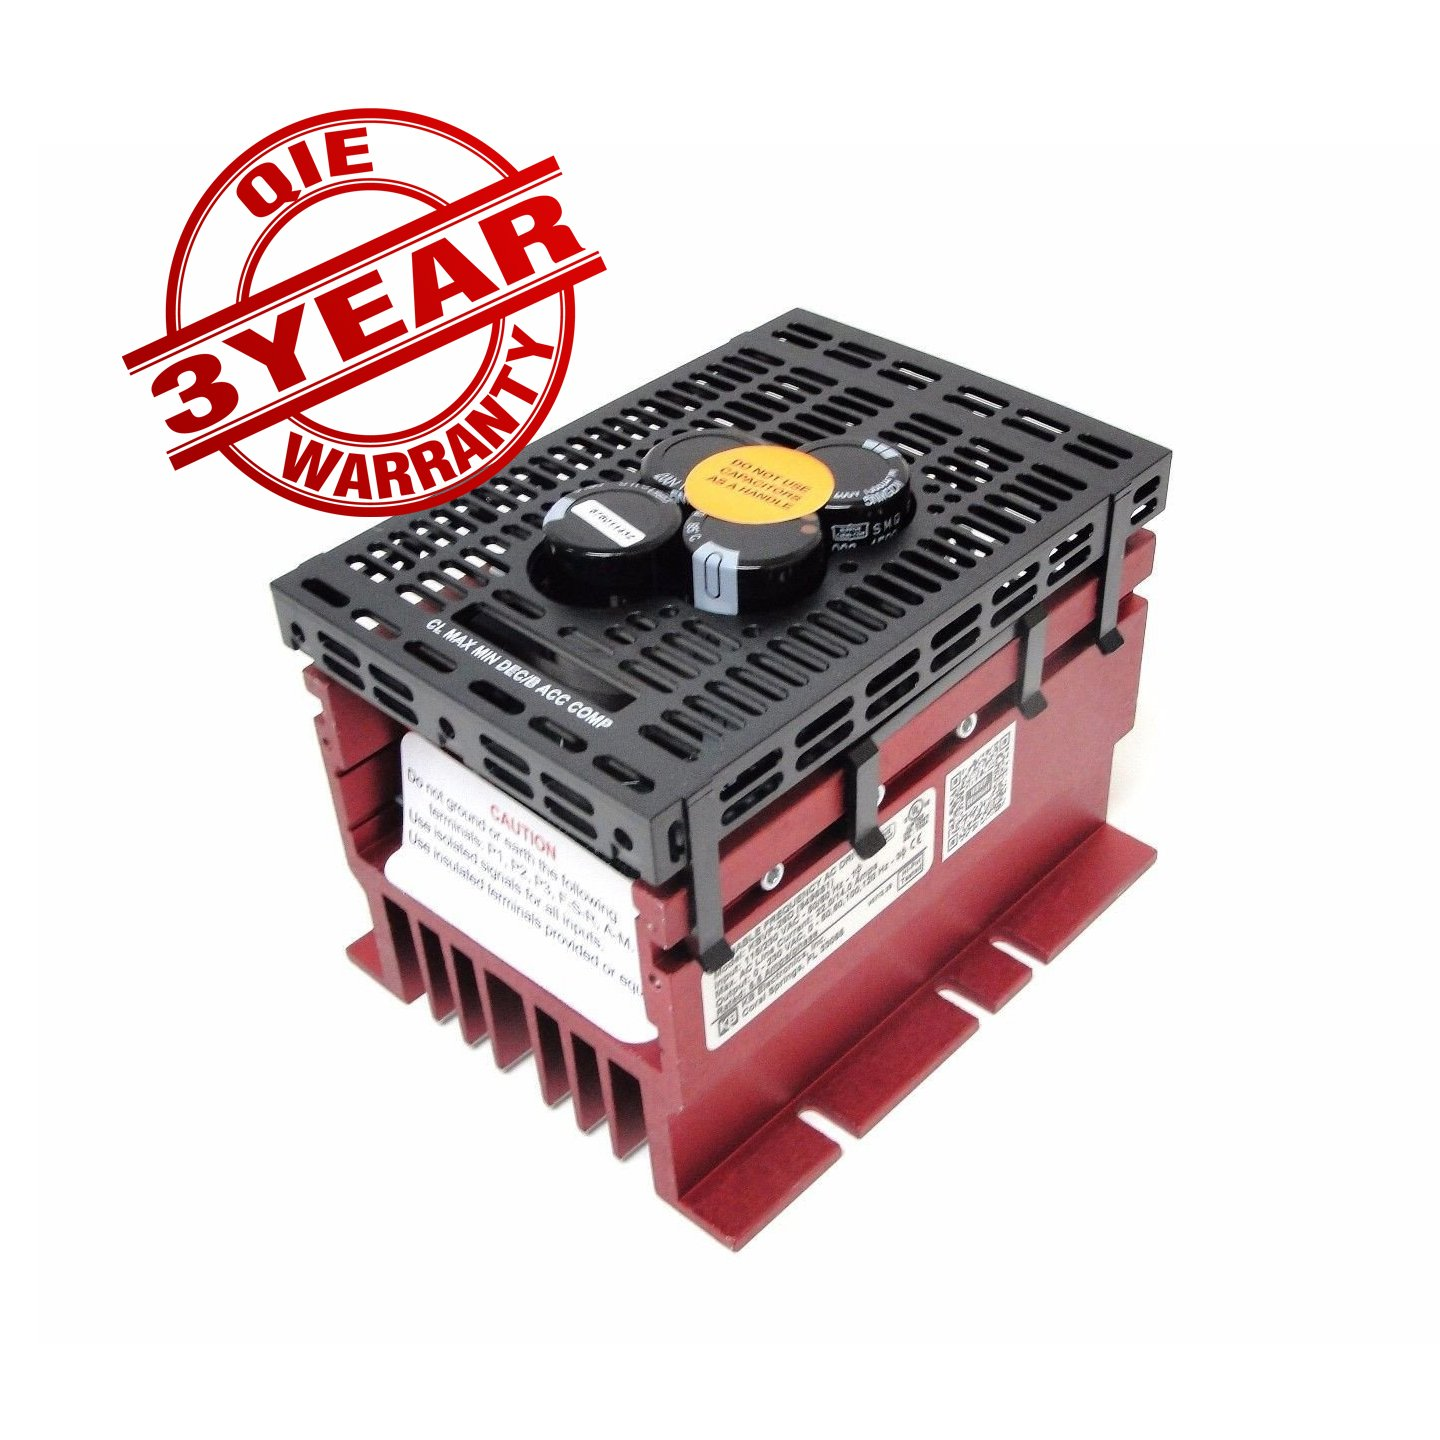 KBVF-26D (9496Q) with QIE Exclusive 3 YEAR Warranty, AC Motor Drive